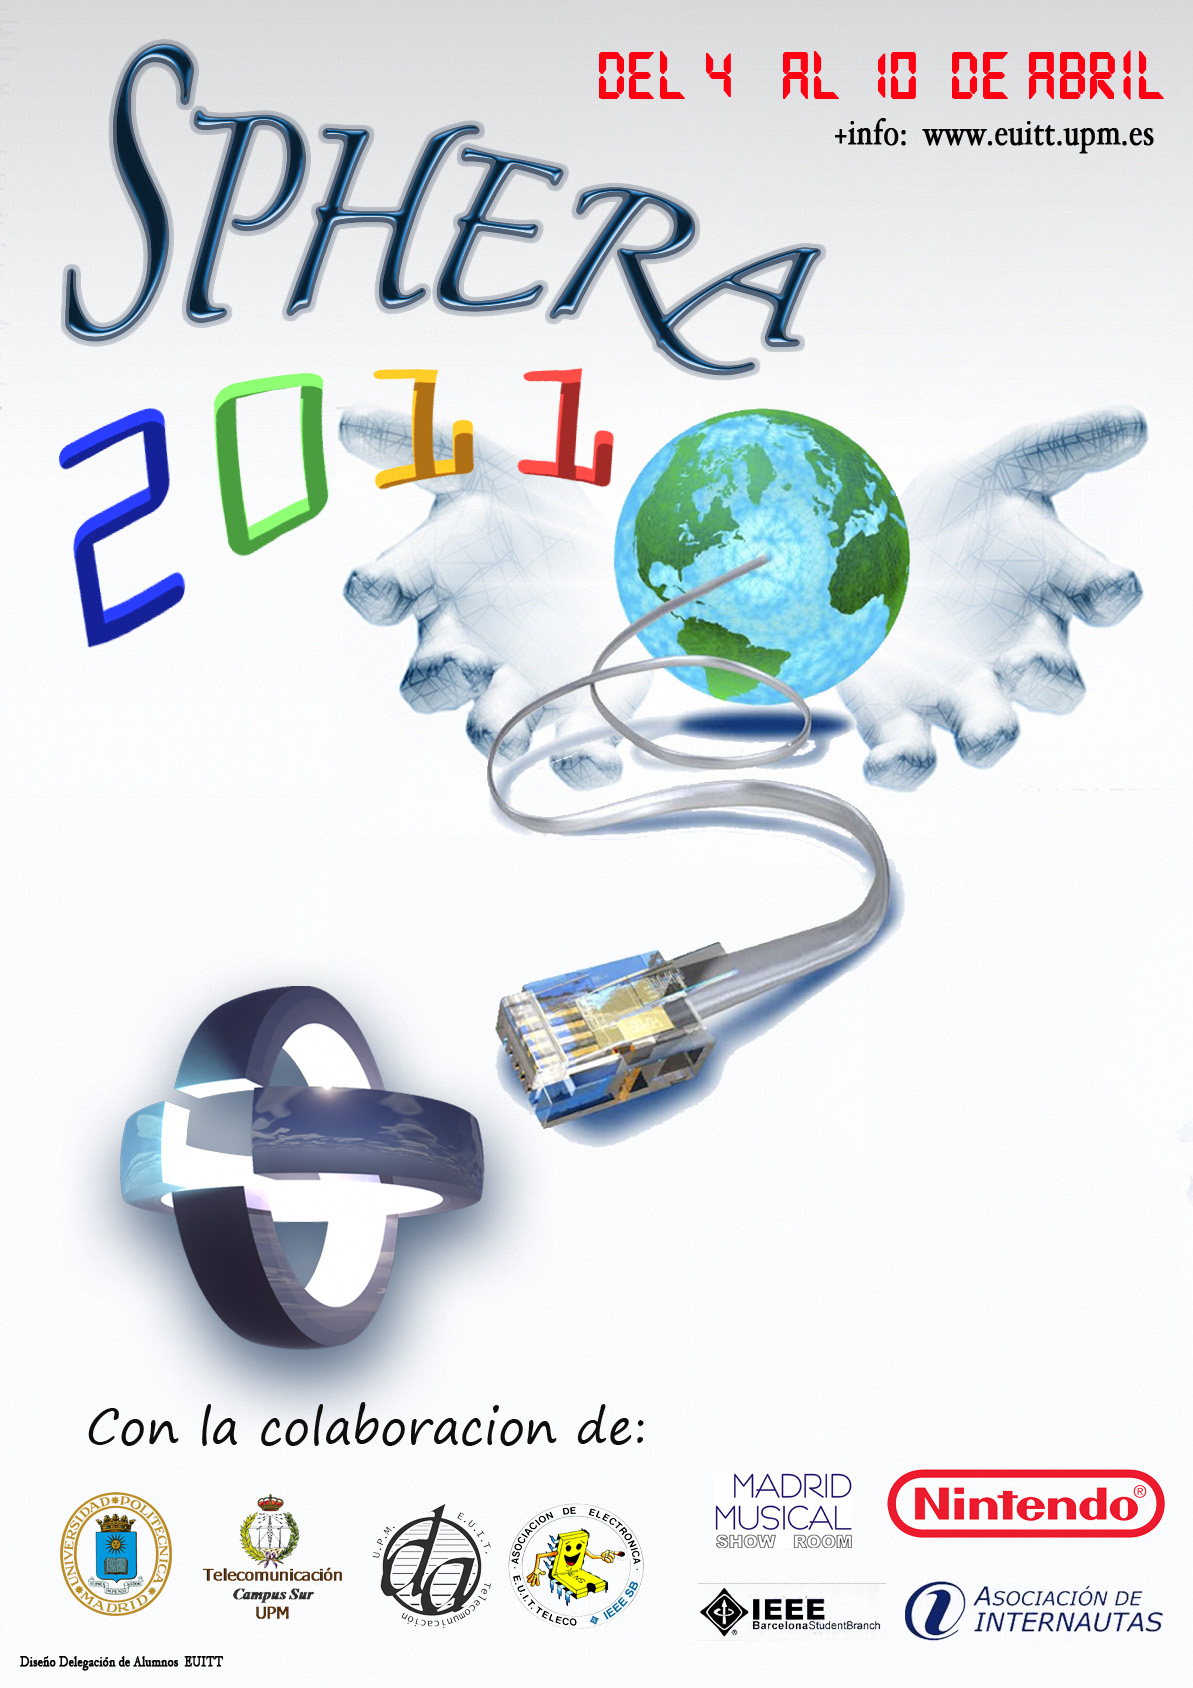 Cartel Sphera 2011